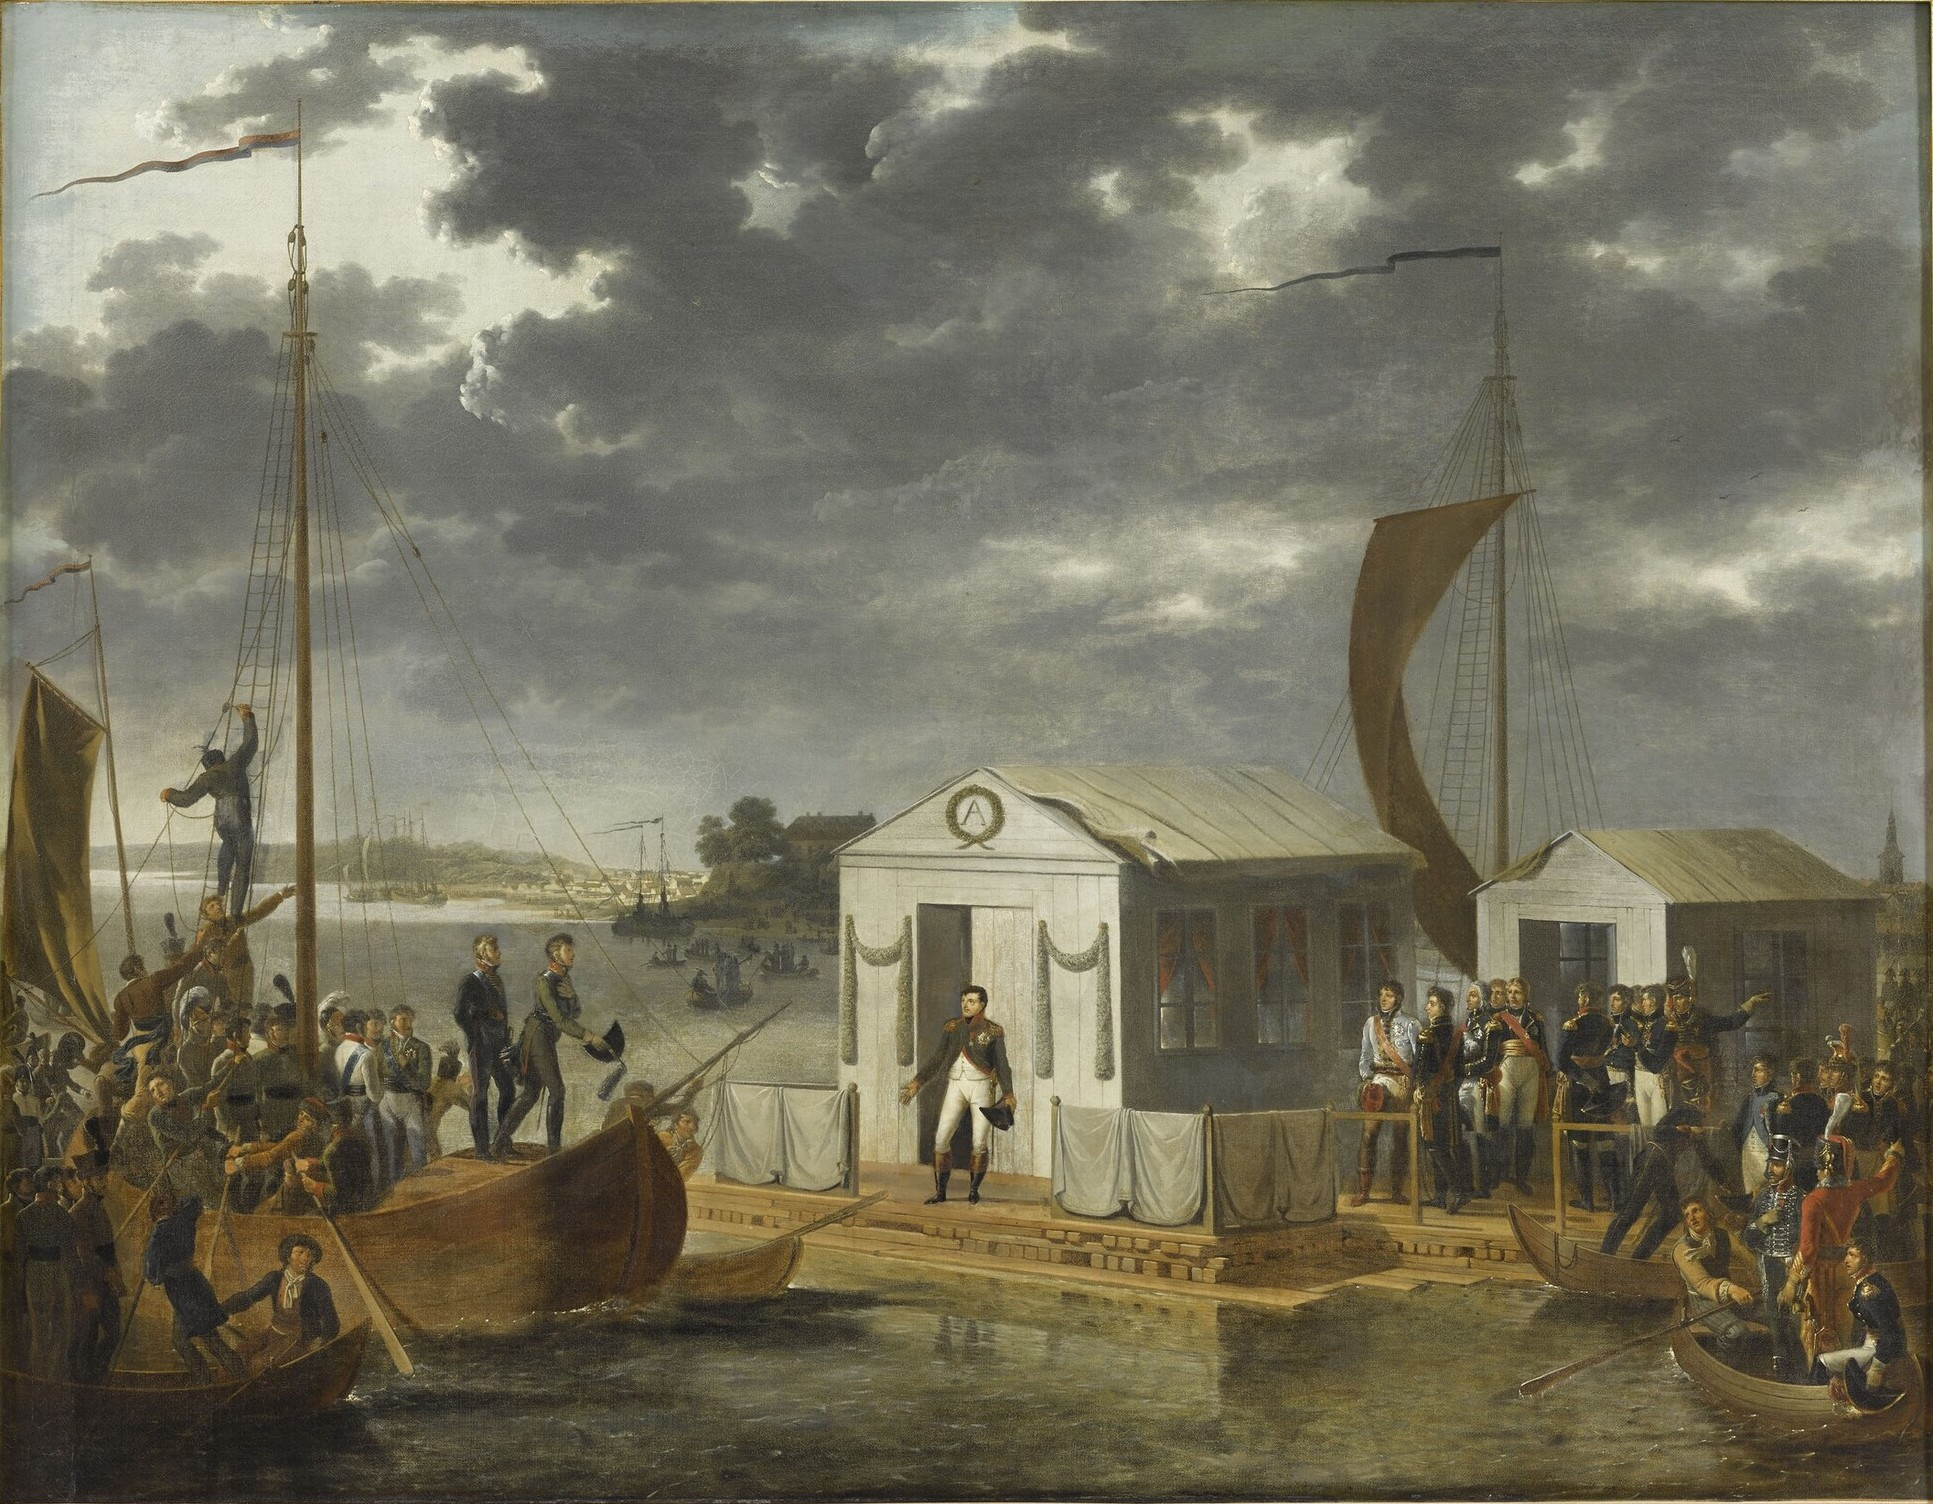 The Treaties of Tilsit: Napoleon meeting with Alexander I of Russia on a raft in the middle of the Neman River.